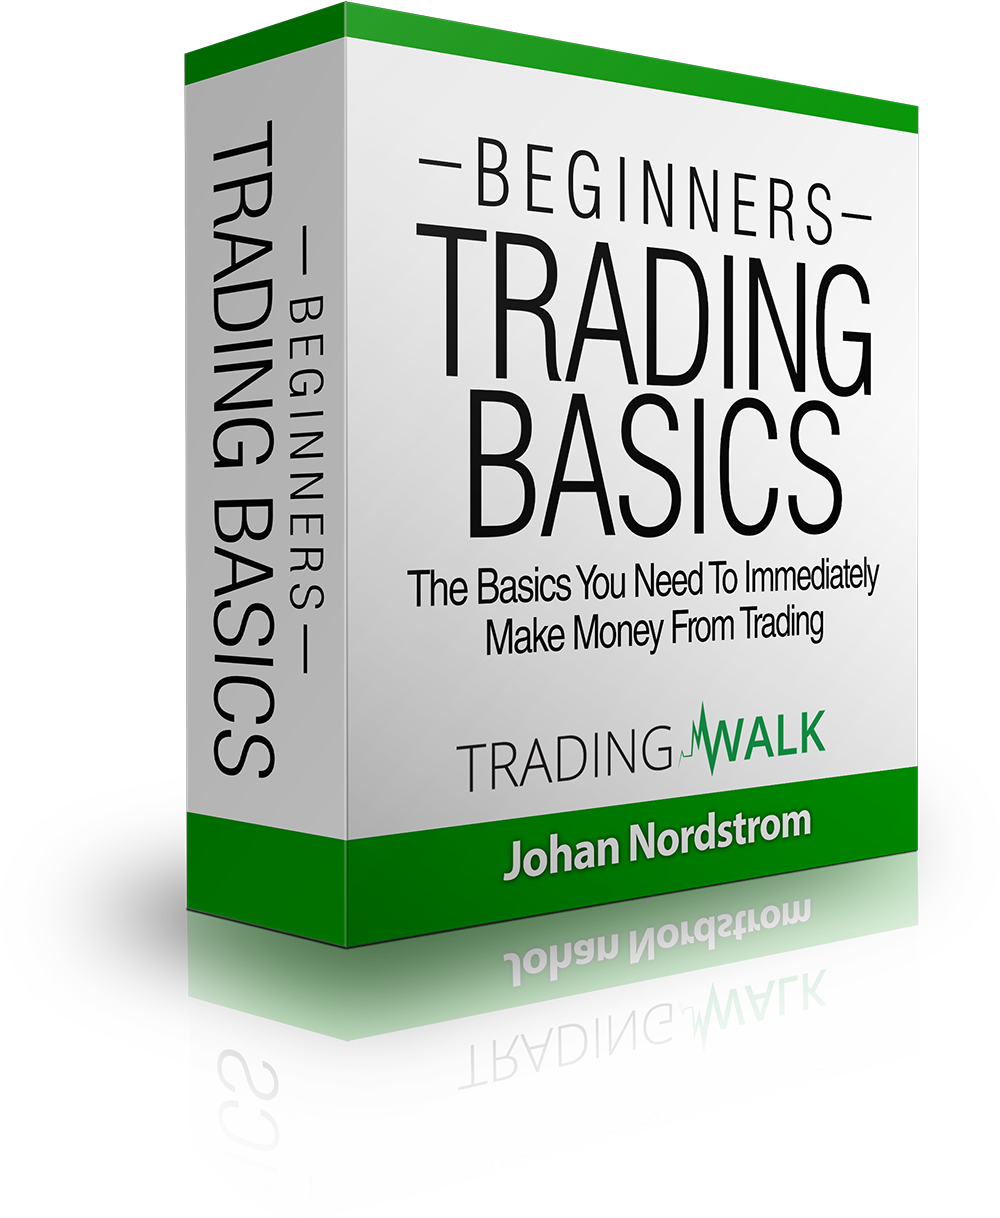 Beginners Trading Course On How To Trade The Market